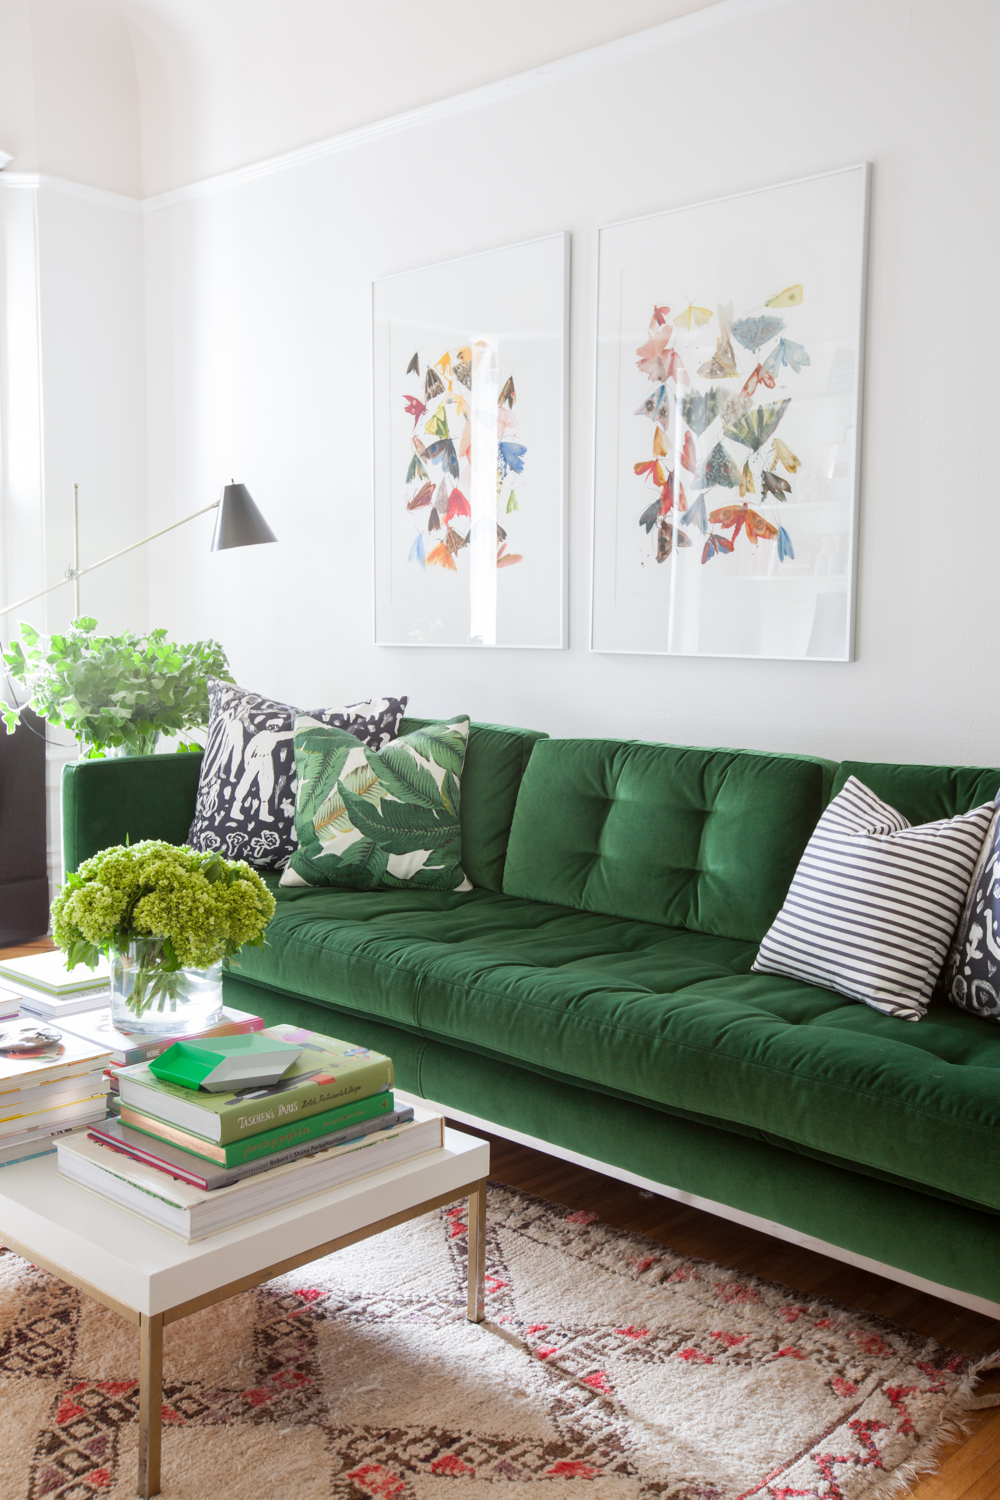 Colorful Sofas in your Living Room 8 Different Ways to use Colorful Sofas in your Living Room 8 Different Ways to use Colorful Sofas in your Living Room5